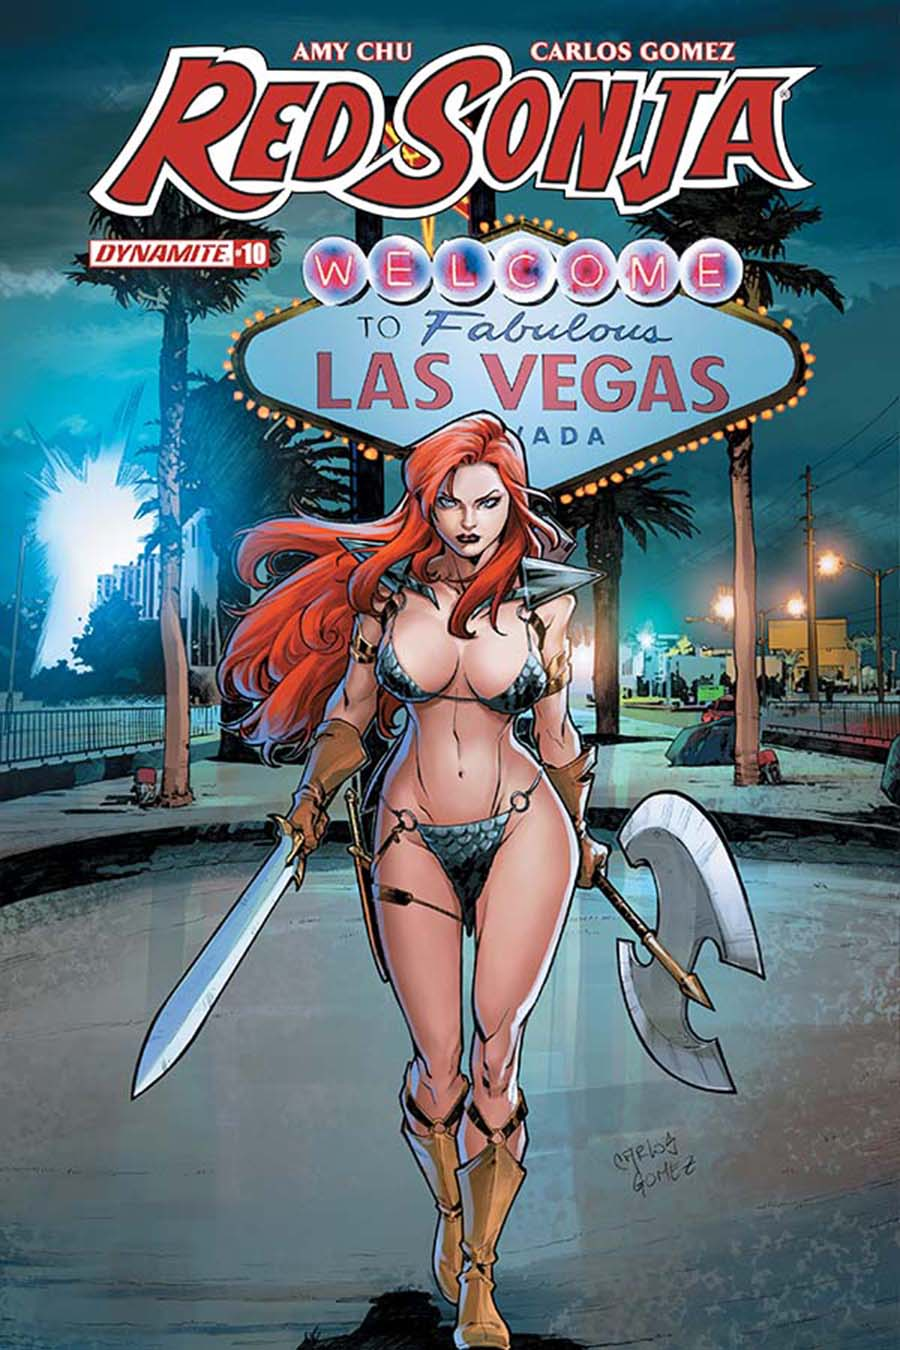 Red Sonja Vol 7 #10 Cover E Variant Carlos Gomez Subscription Cover